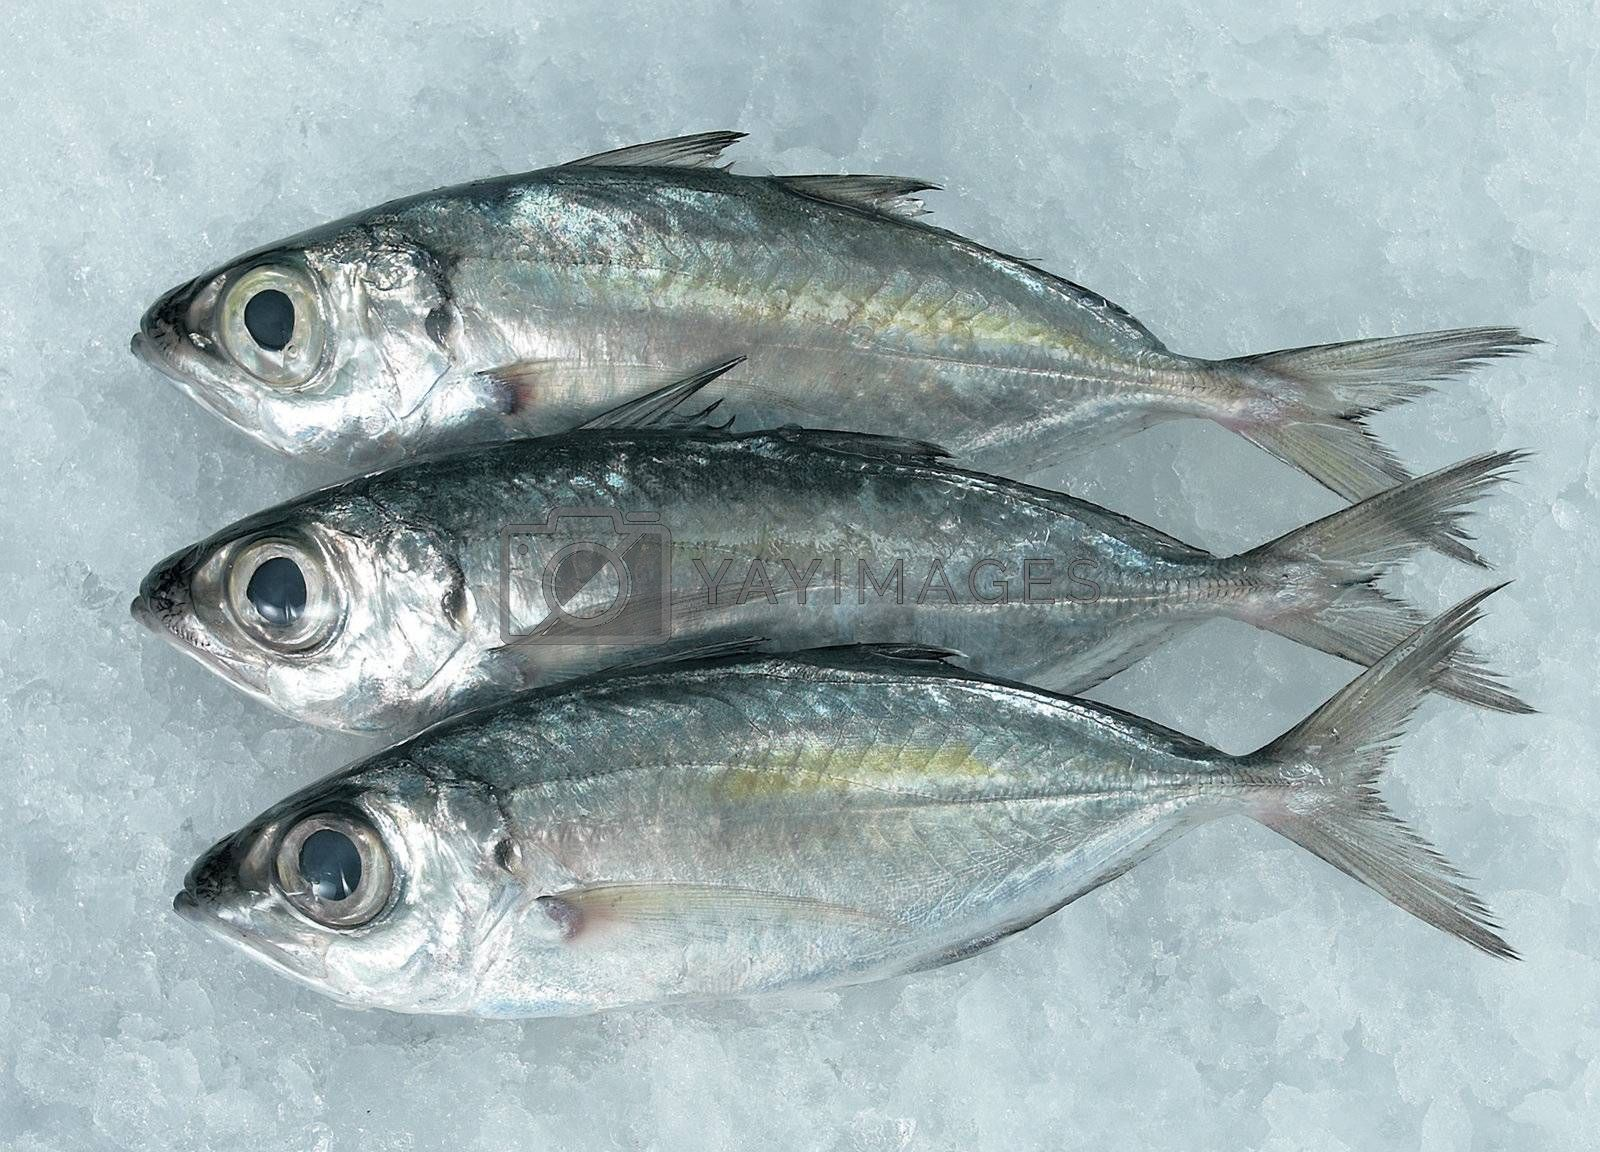 Image series of fishes.